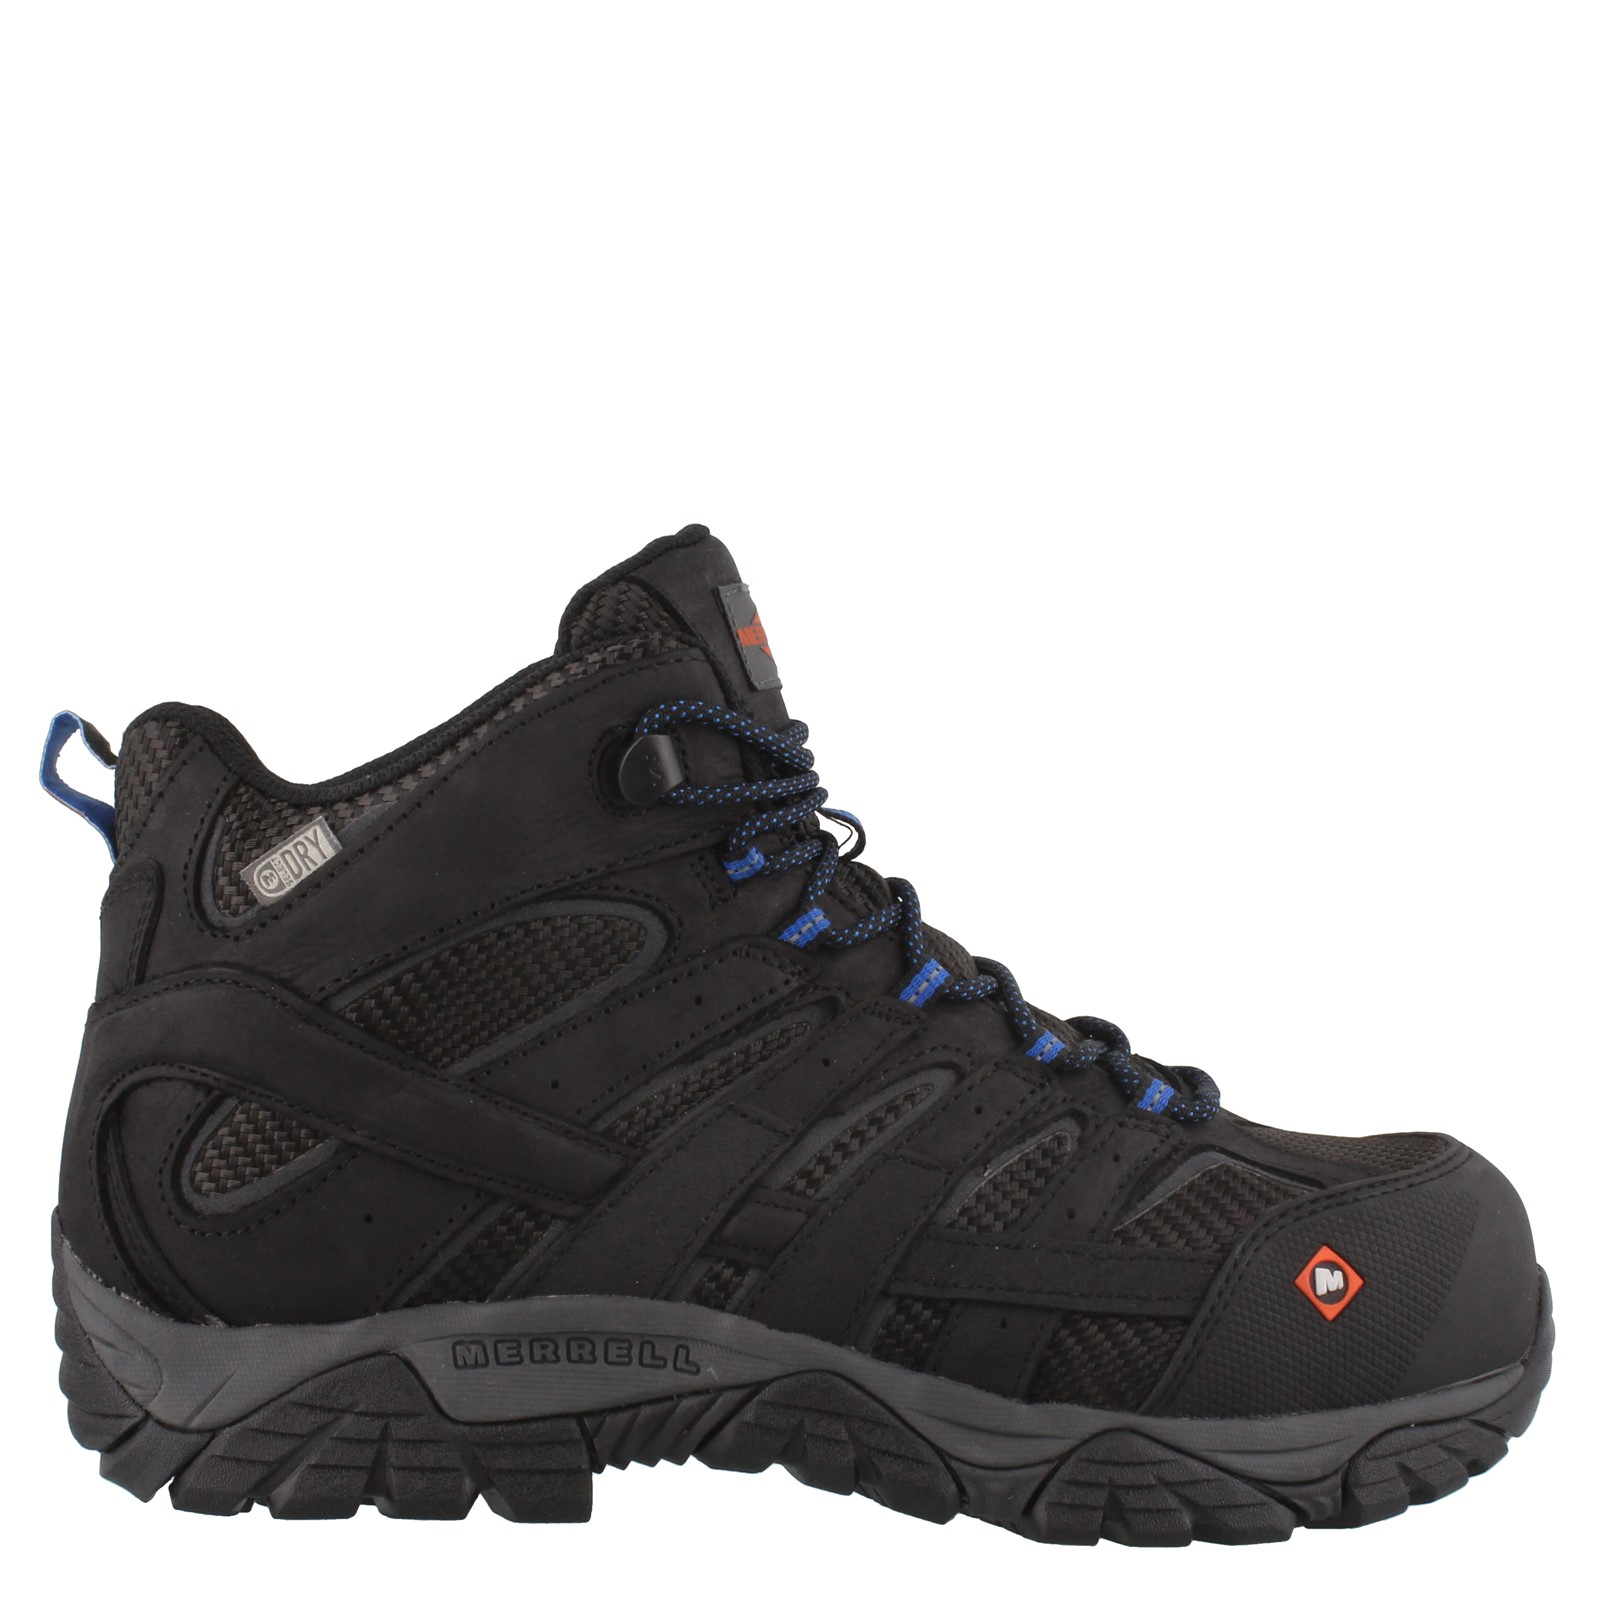 23281b00 Men's Merrell, Moab 2 Vent Mid Waterproof Composite Toe Work Boots